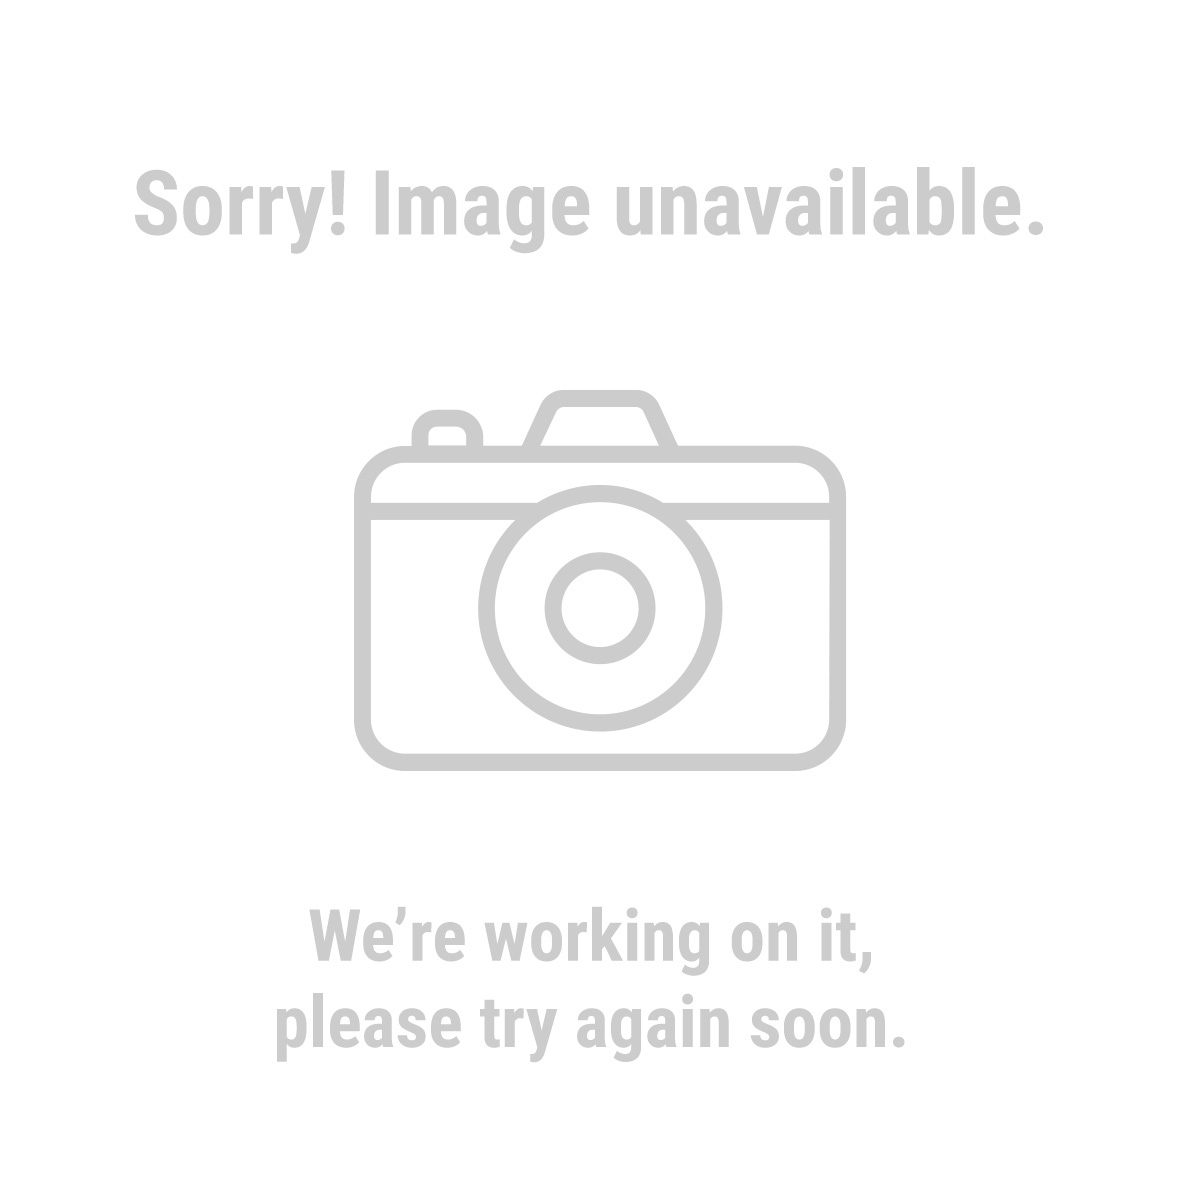 HFT® 69255 5 ft. 6 in. x 7 ft. 6 in. Reflective Heavy Duty Silver Tarp